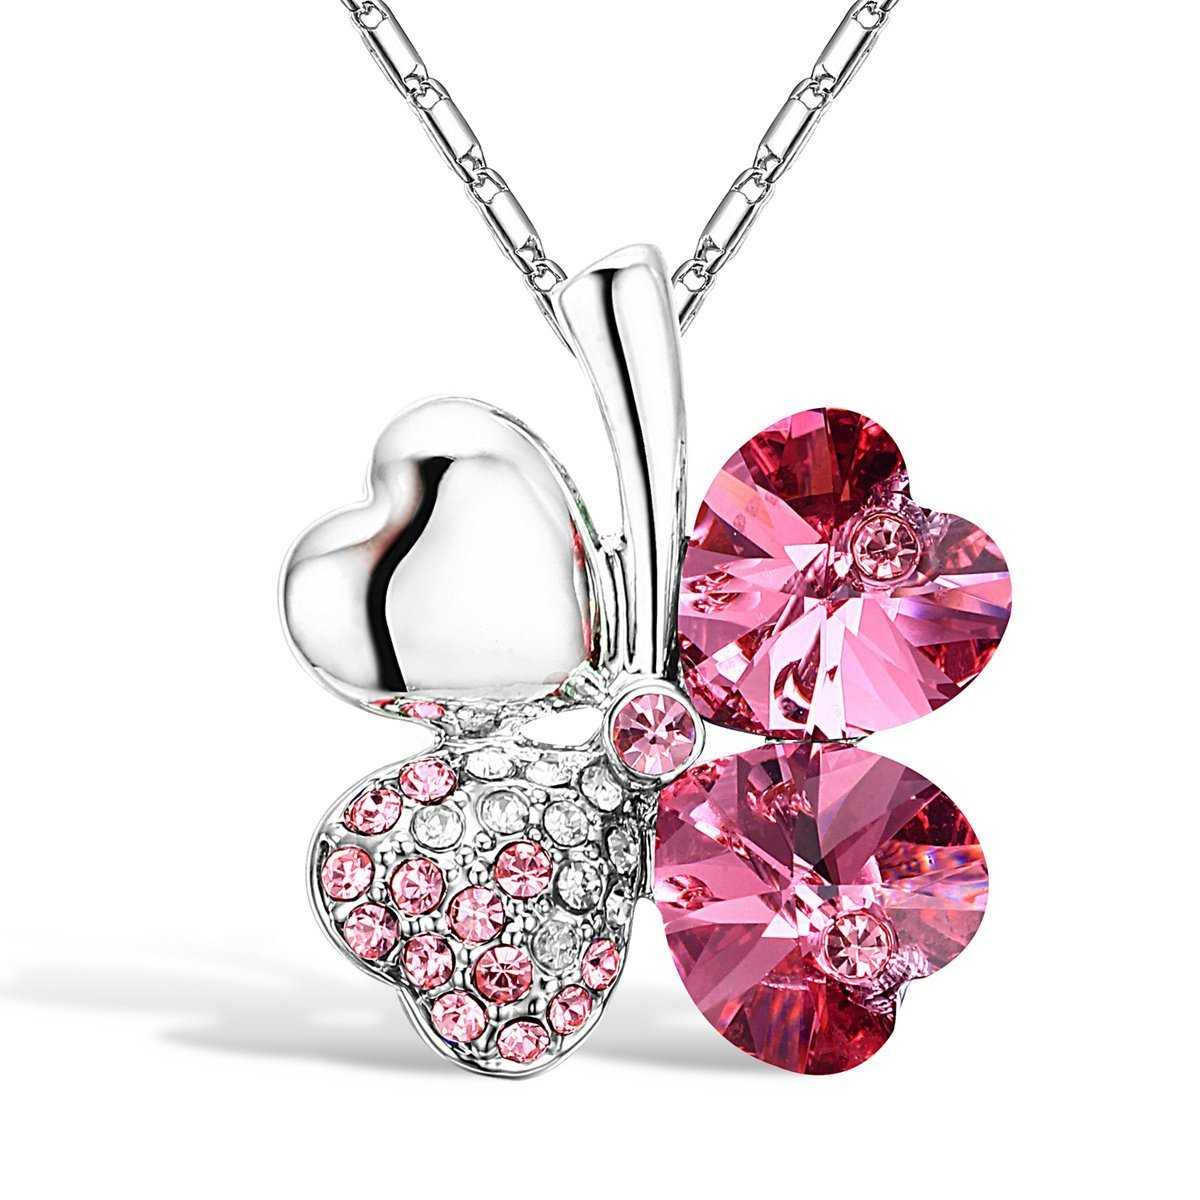 Leaf Clover Heart Shaped Crystal Pendant Necklace